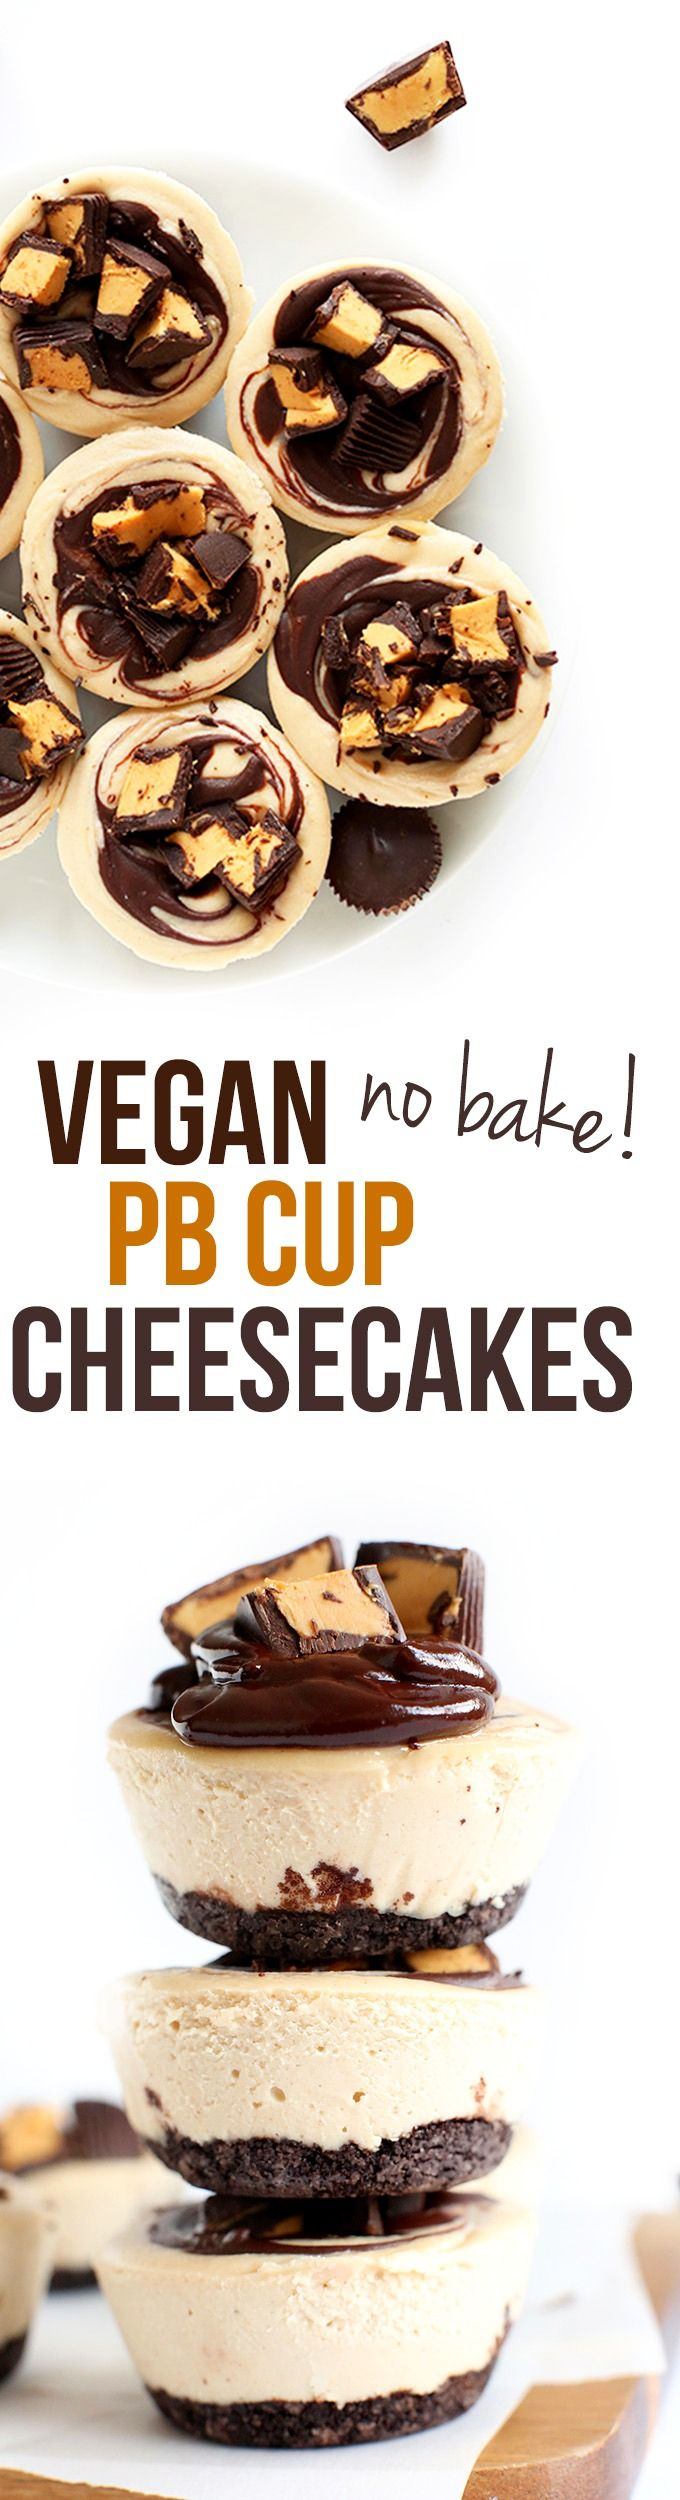 AMAZING no bake cheesecakes loaded with PEANUT BUTTER CUP flavor. 9 ingredients, #vegan and SO delicious!